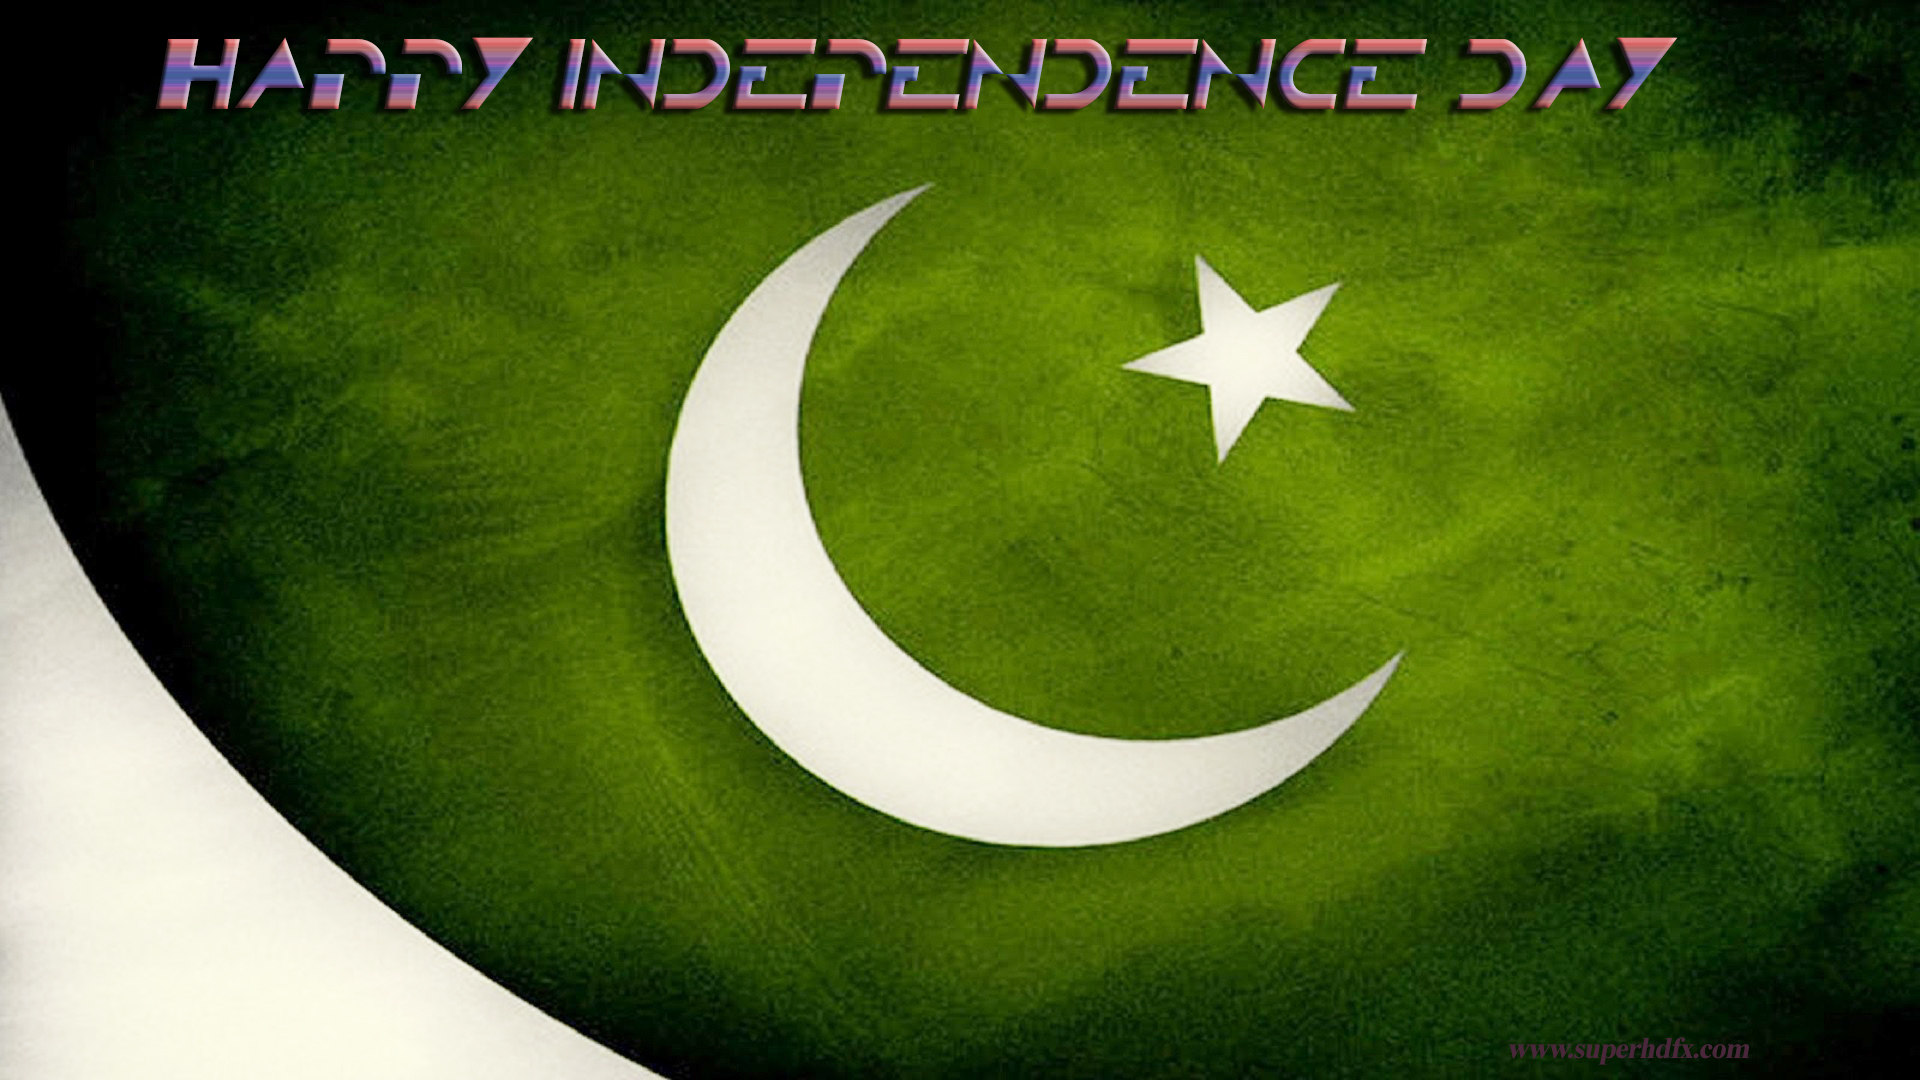 Pakistan Independence Day Hd Wallpaper - Pakistan Independence Day Wallpapers Hd , HD Wallpaper & Backgrounds